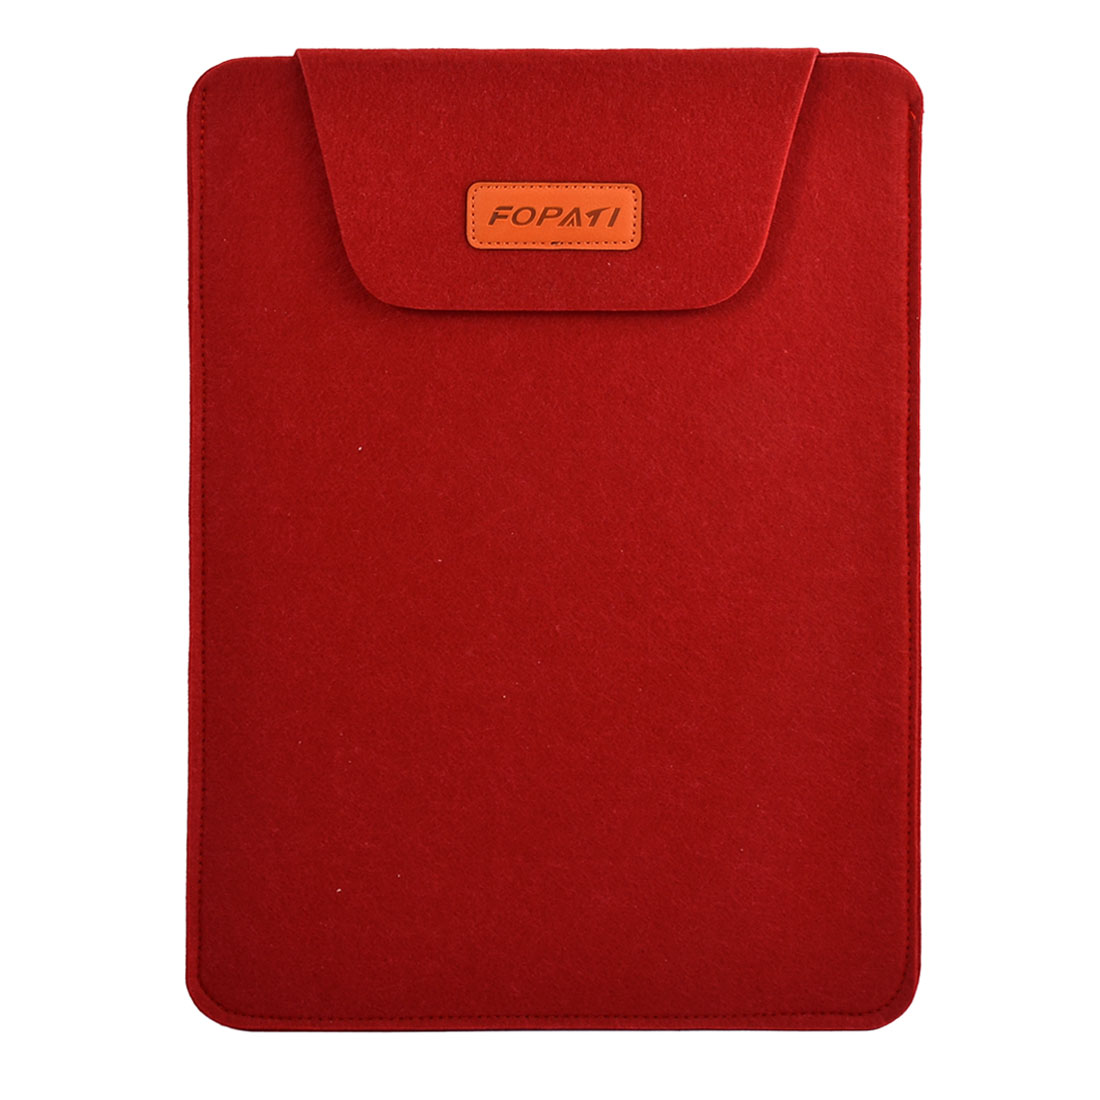 PC Wool Felt Universal Protective Skin Notebook Sleeve Case Red for 12 Inch Laptop